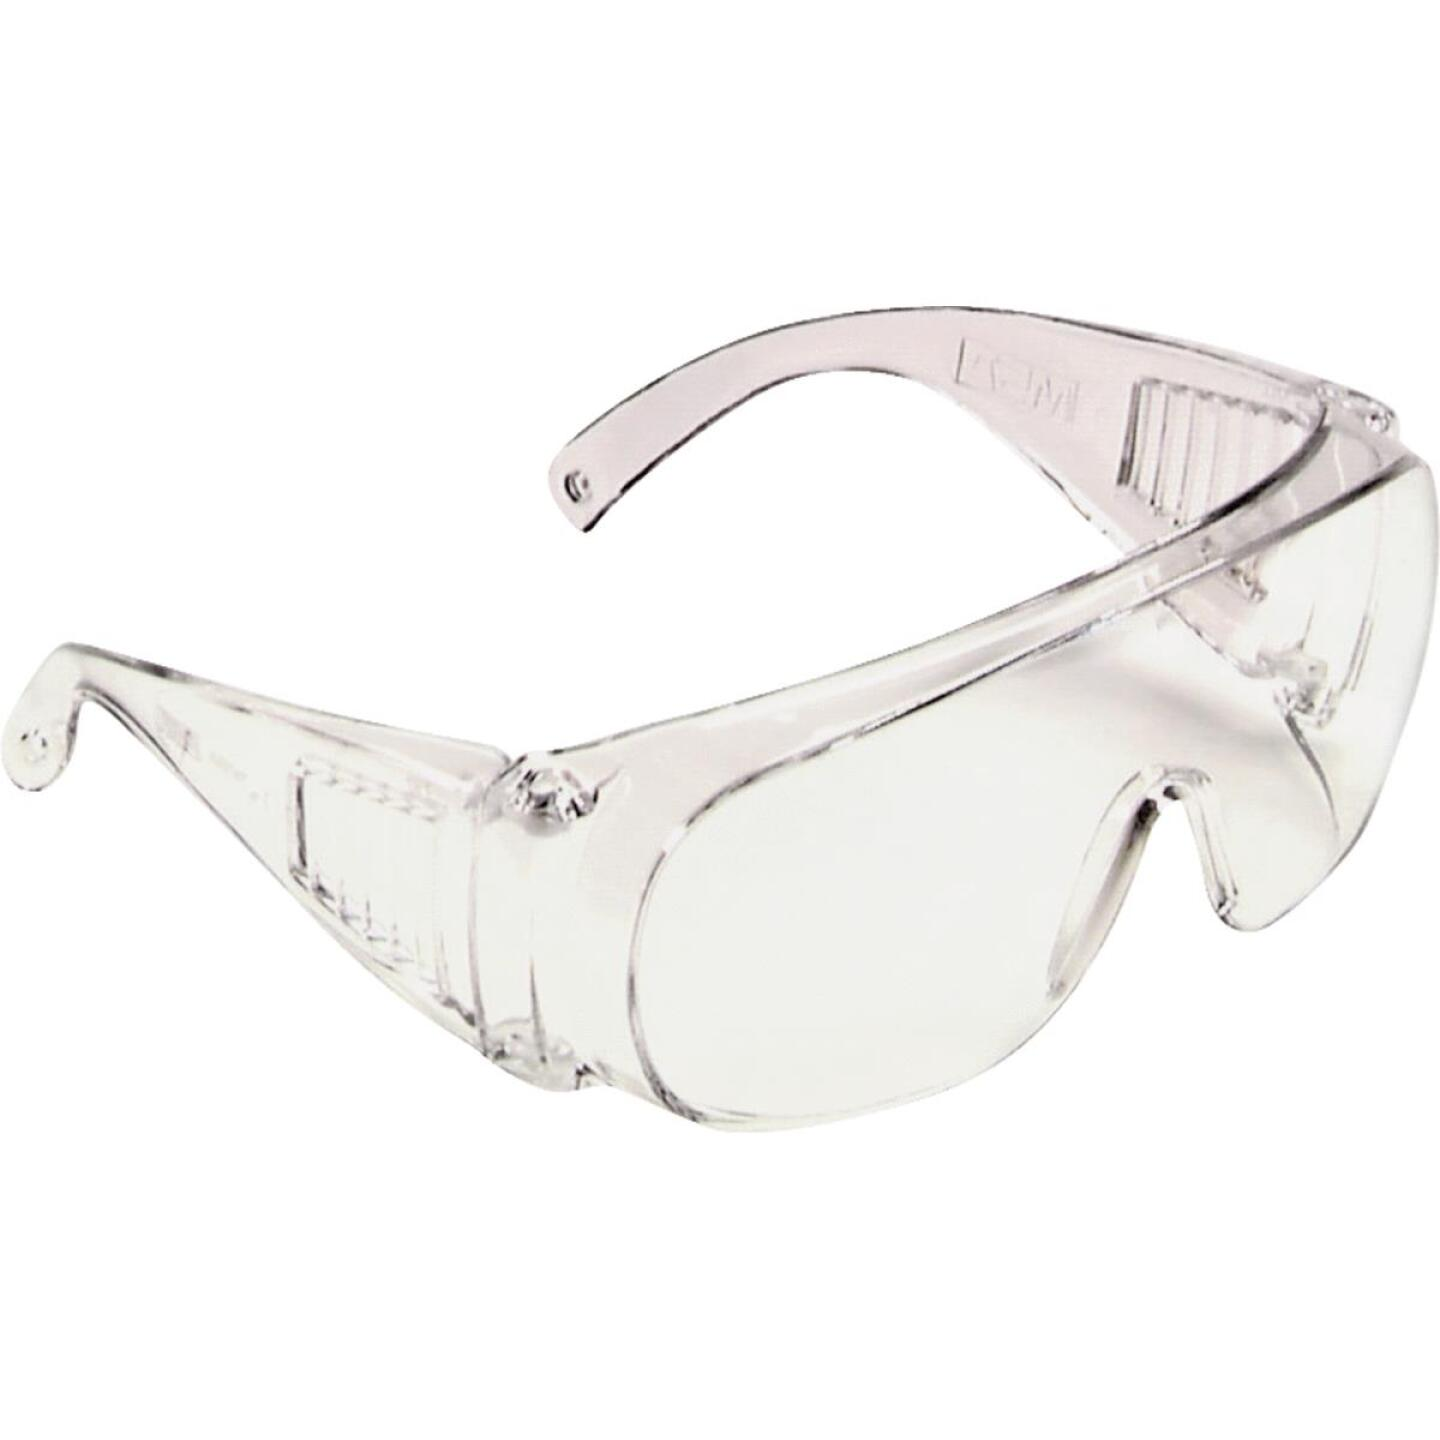 Safety Works Clear Frame Safety Glasses with Anti-Fog Clear Lenses Image 1